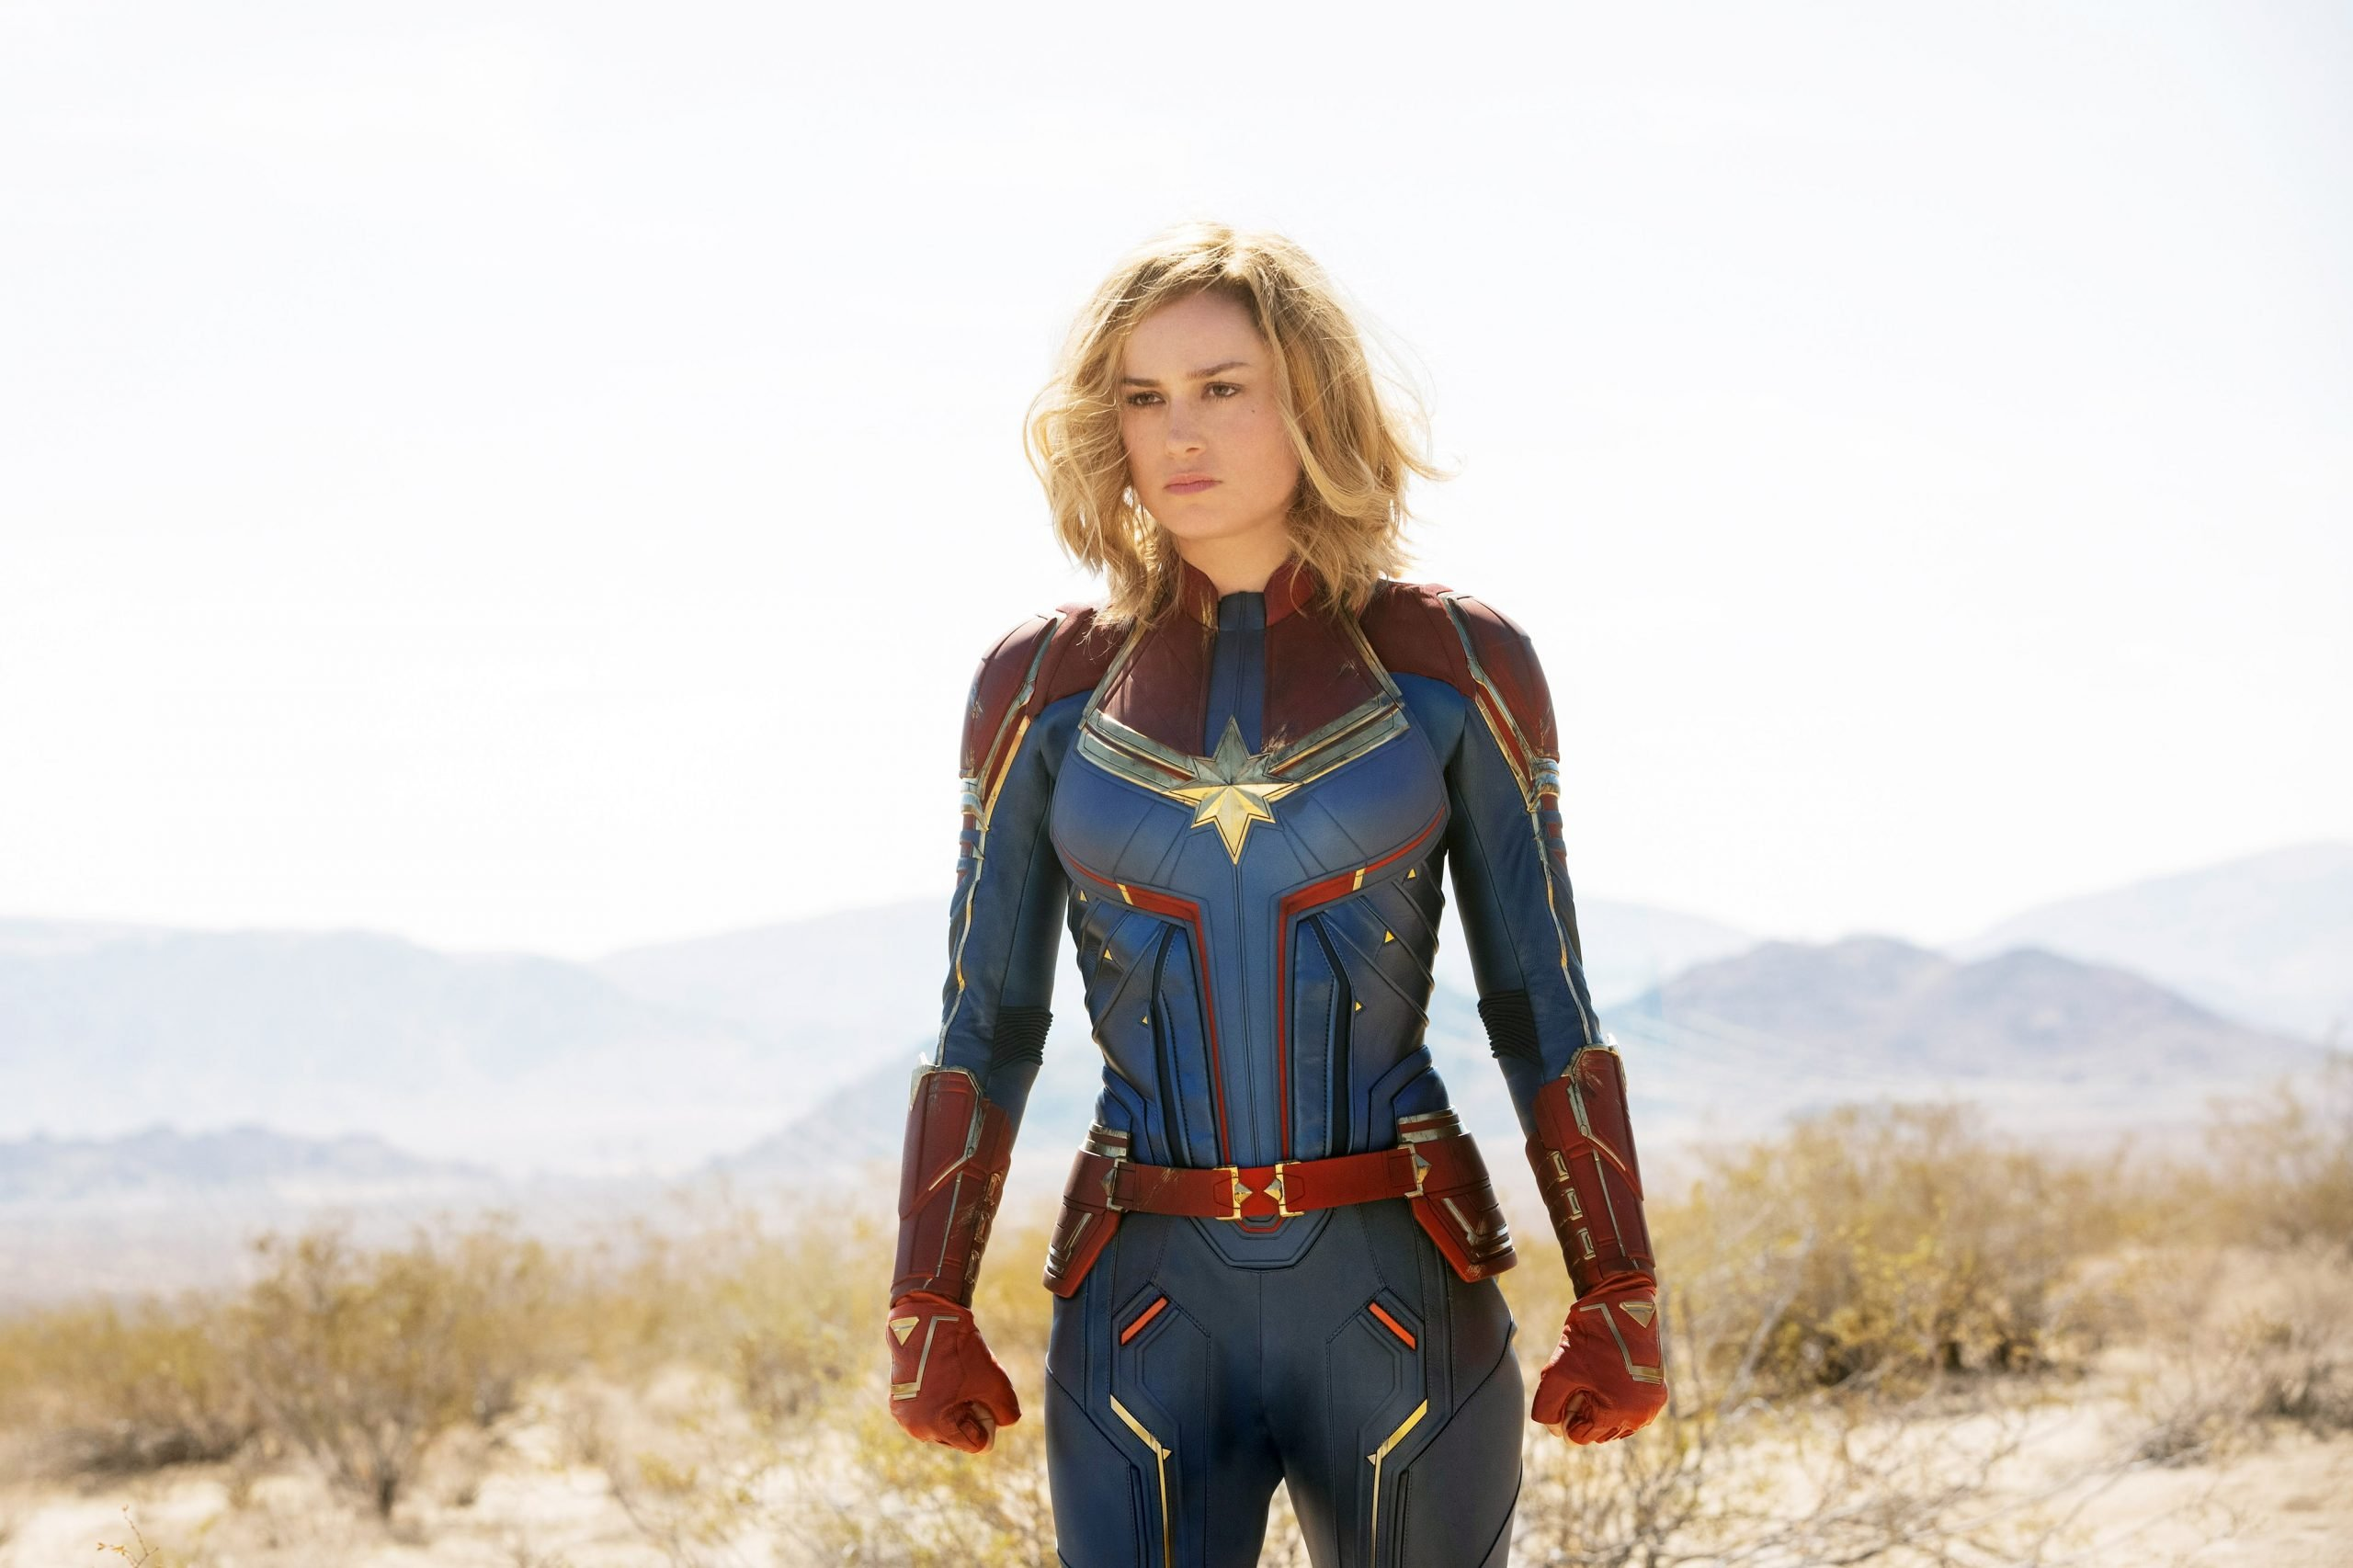 [Confirmed] Brie Larson's Captain Marvel Will Lead The New Team in an Upcoming Avengers 5